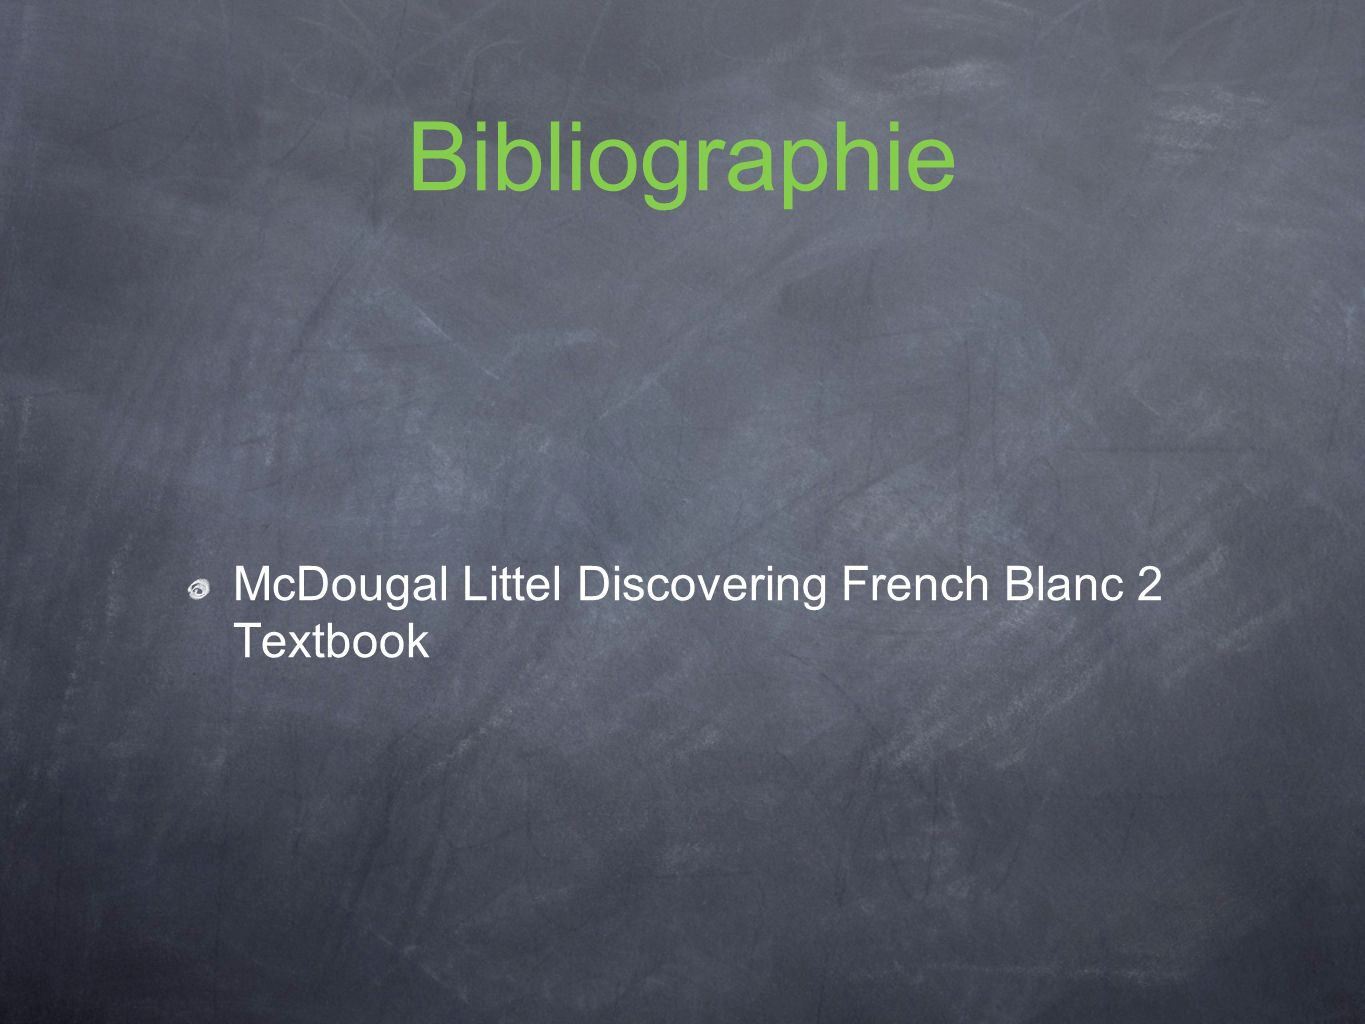 Bibliographie McDougal Littel Discovering French Blanc 2 Textbook